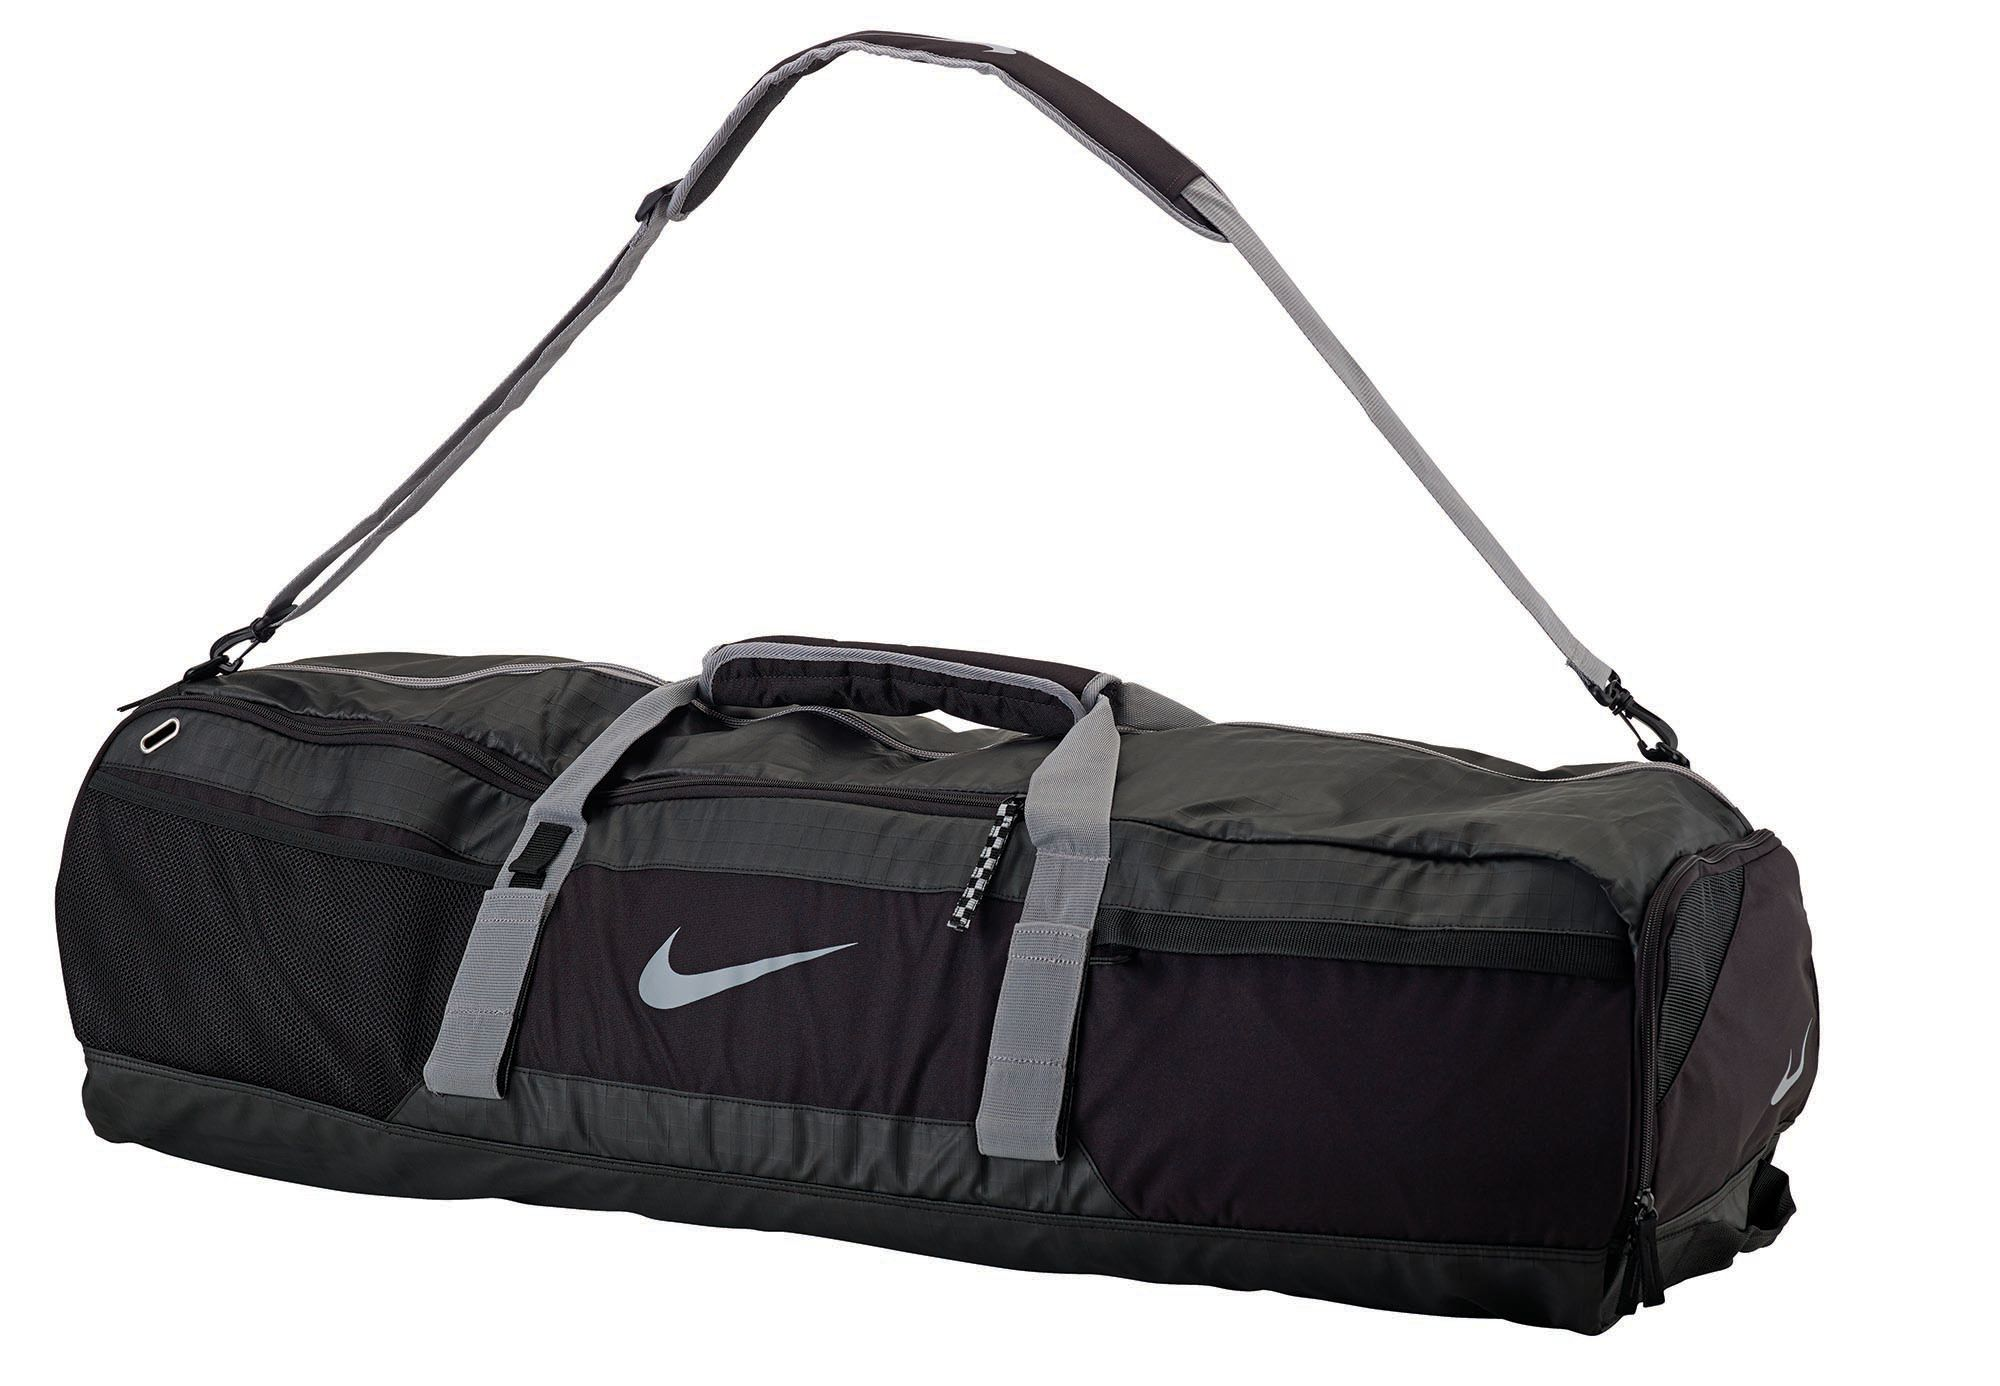 MUOOUM Cool Animal Lion Galaxy Large Duffle Bags Sports Gym Bag with Shoes Compartment for Men and Women